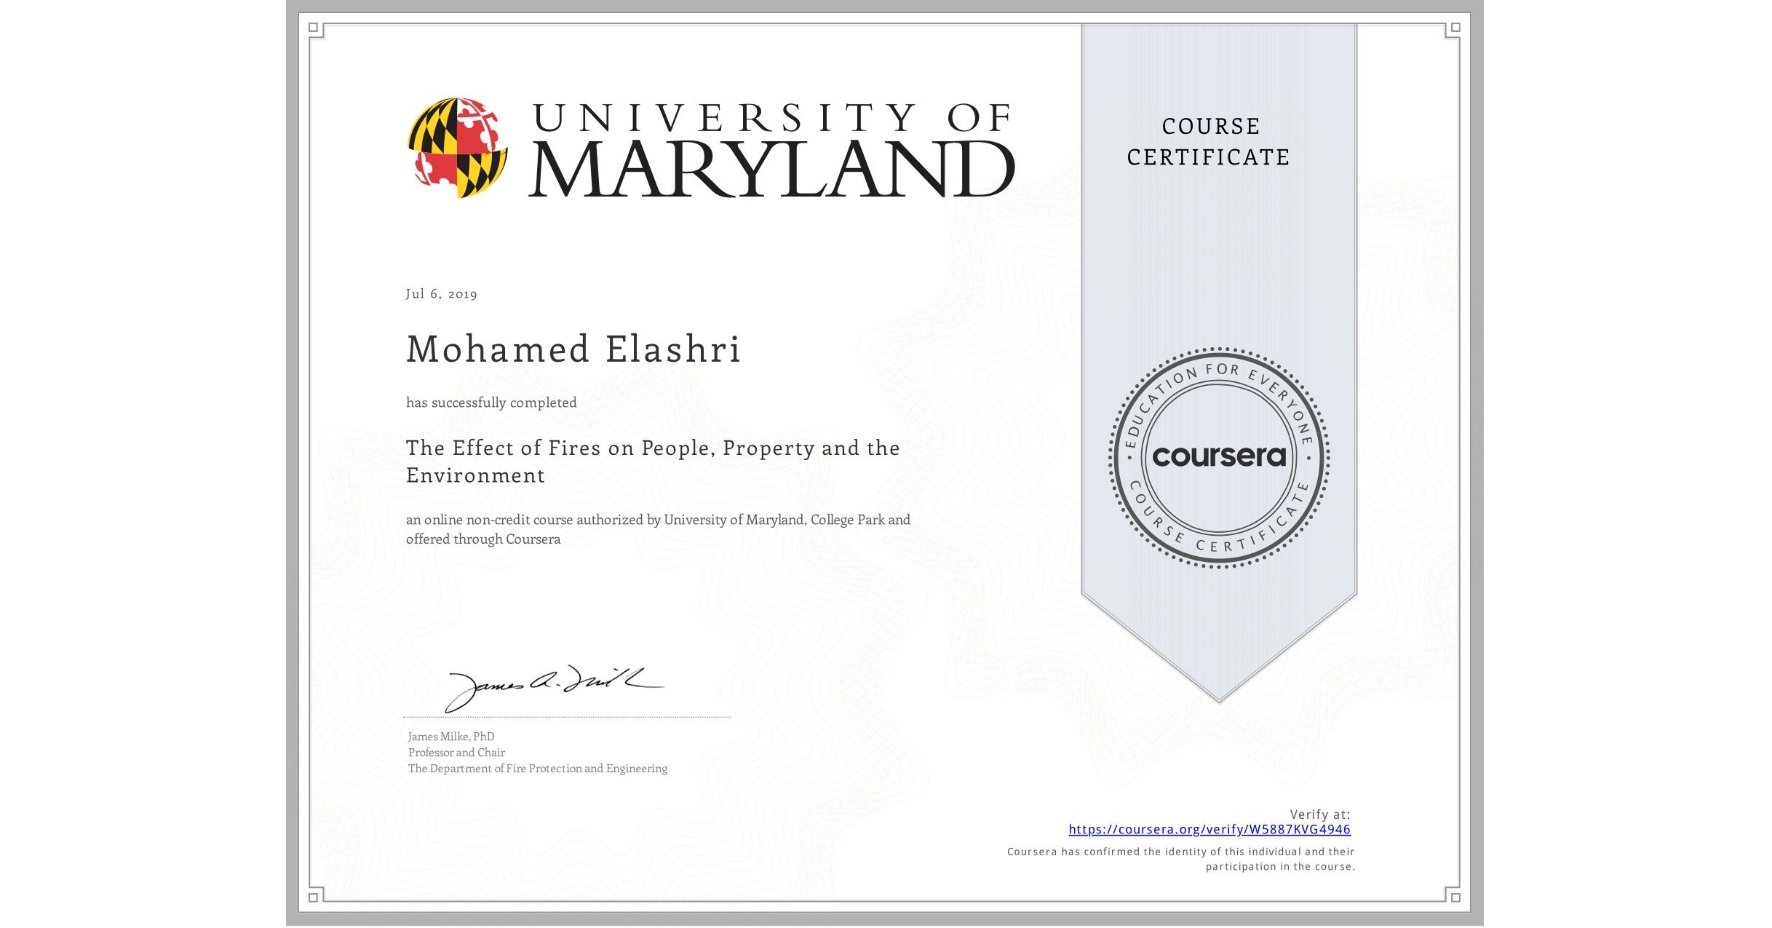 View certificate for Mohamed Elashri, The Effect of Fires on People, Property and the Environment, an online non-credit course authorized by University of Maryland, College Park and offered through Coursera